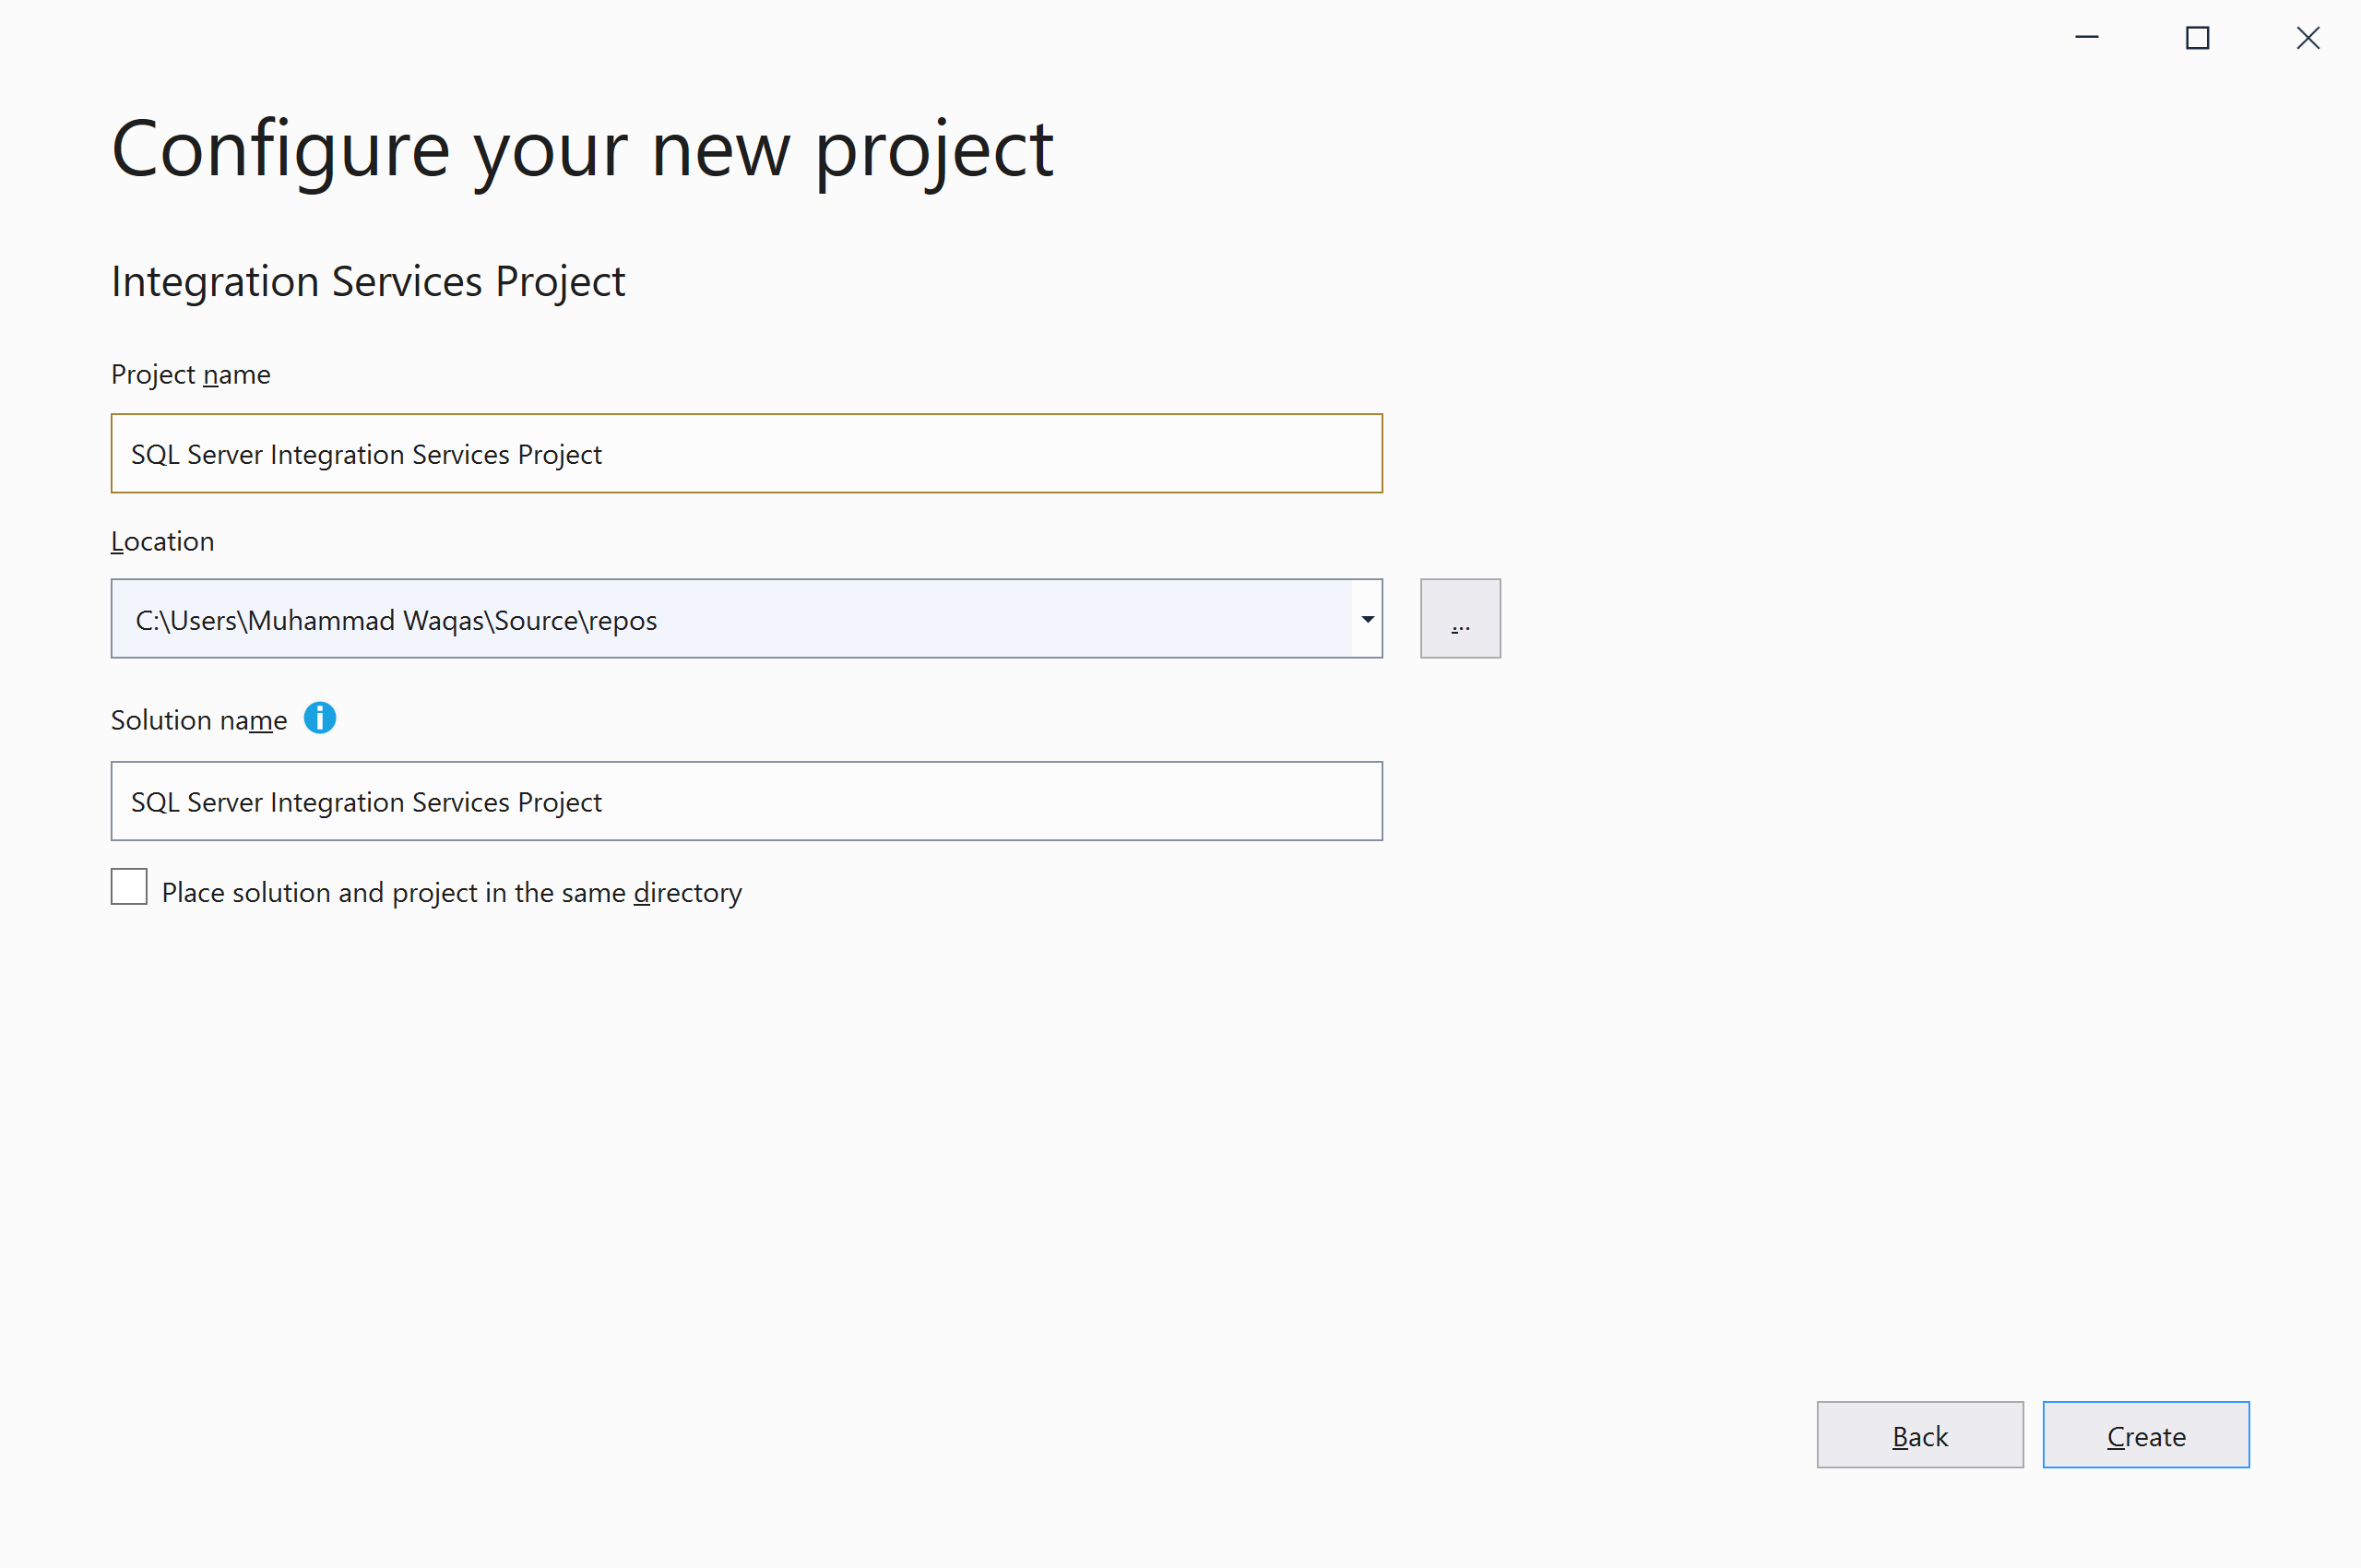 Type a project name